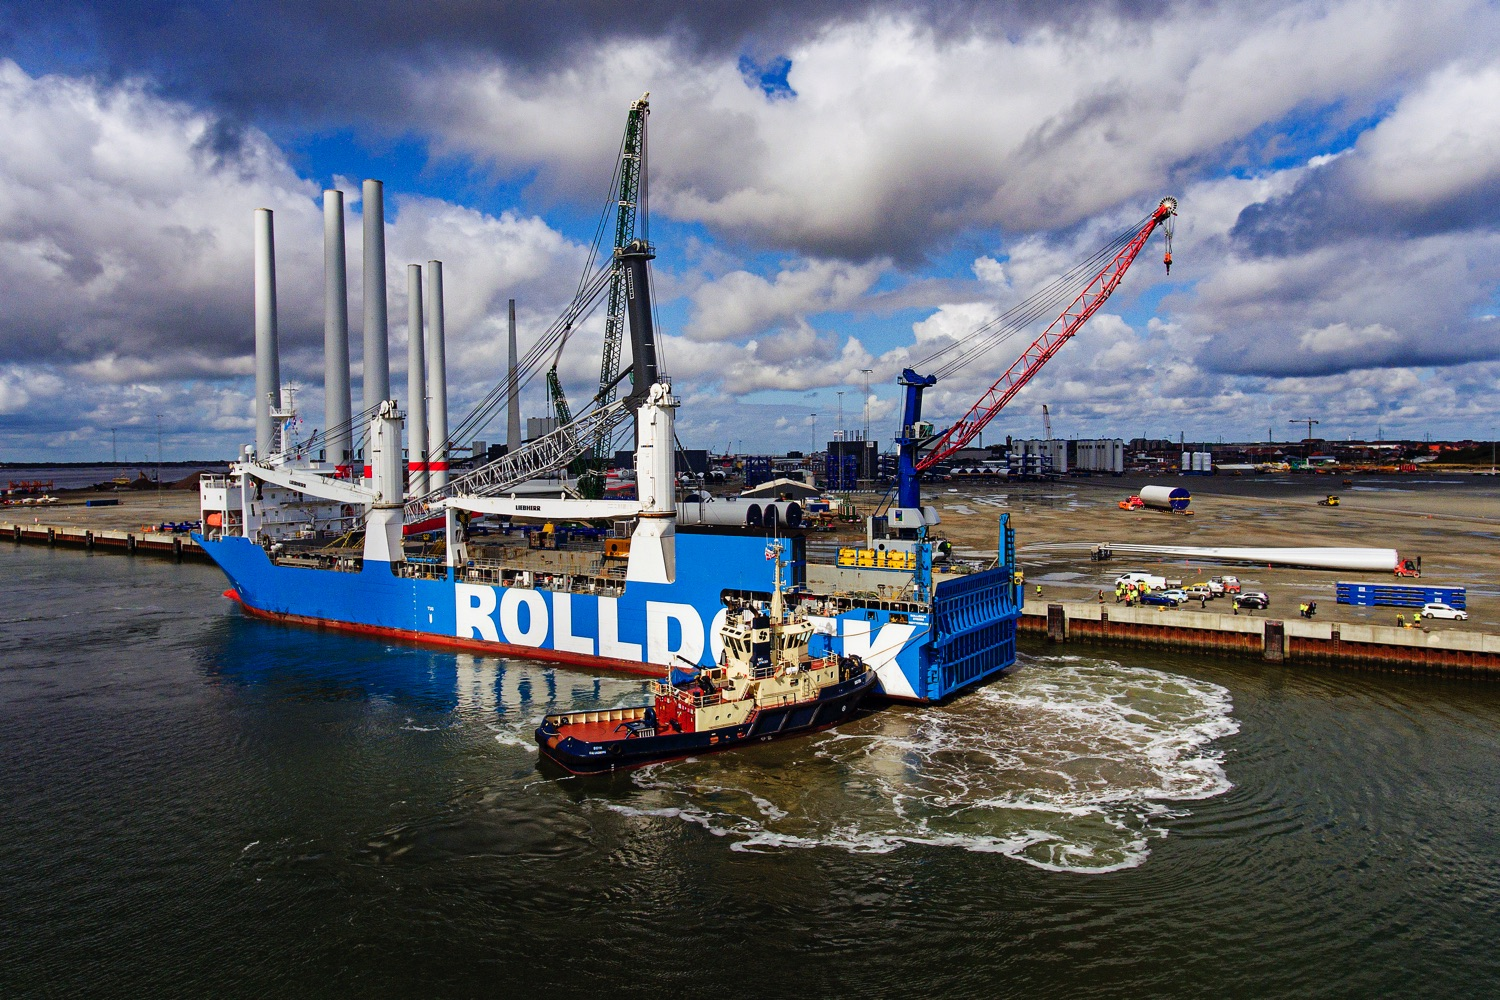 ROLLDOCK STORM with the Liebherr 800 arriving in the Port of Esbjerg